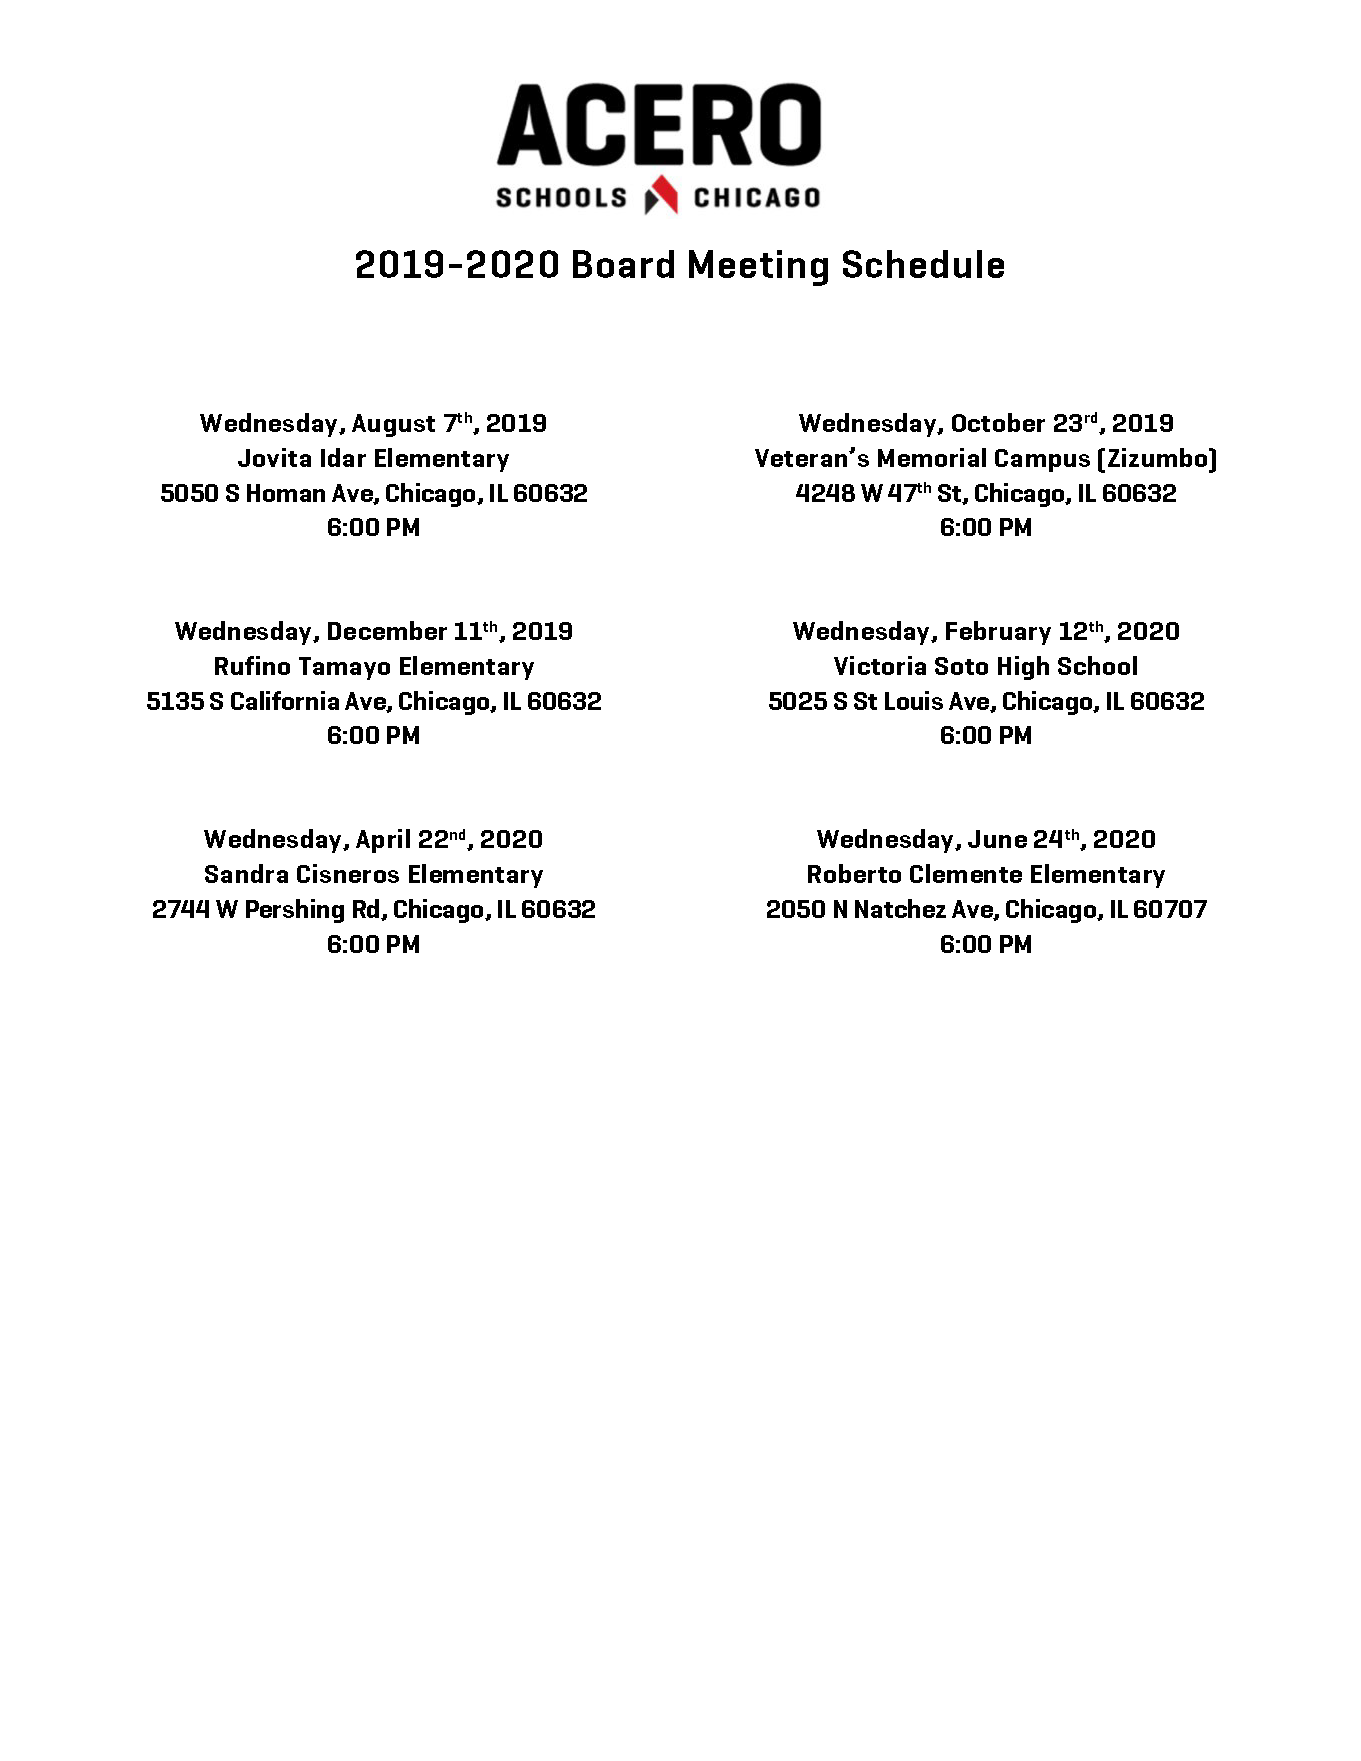 Board Meeting Dates